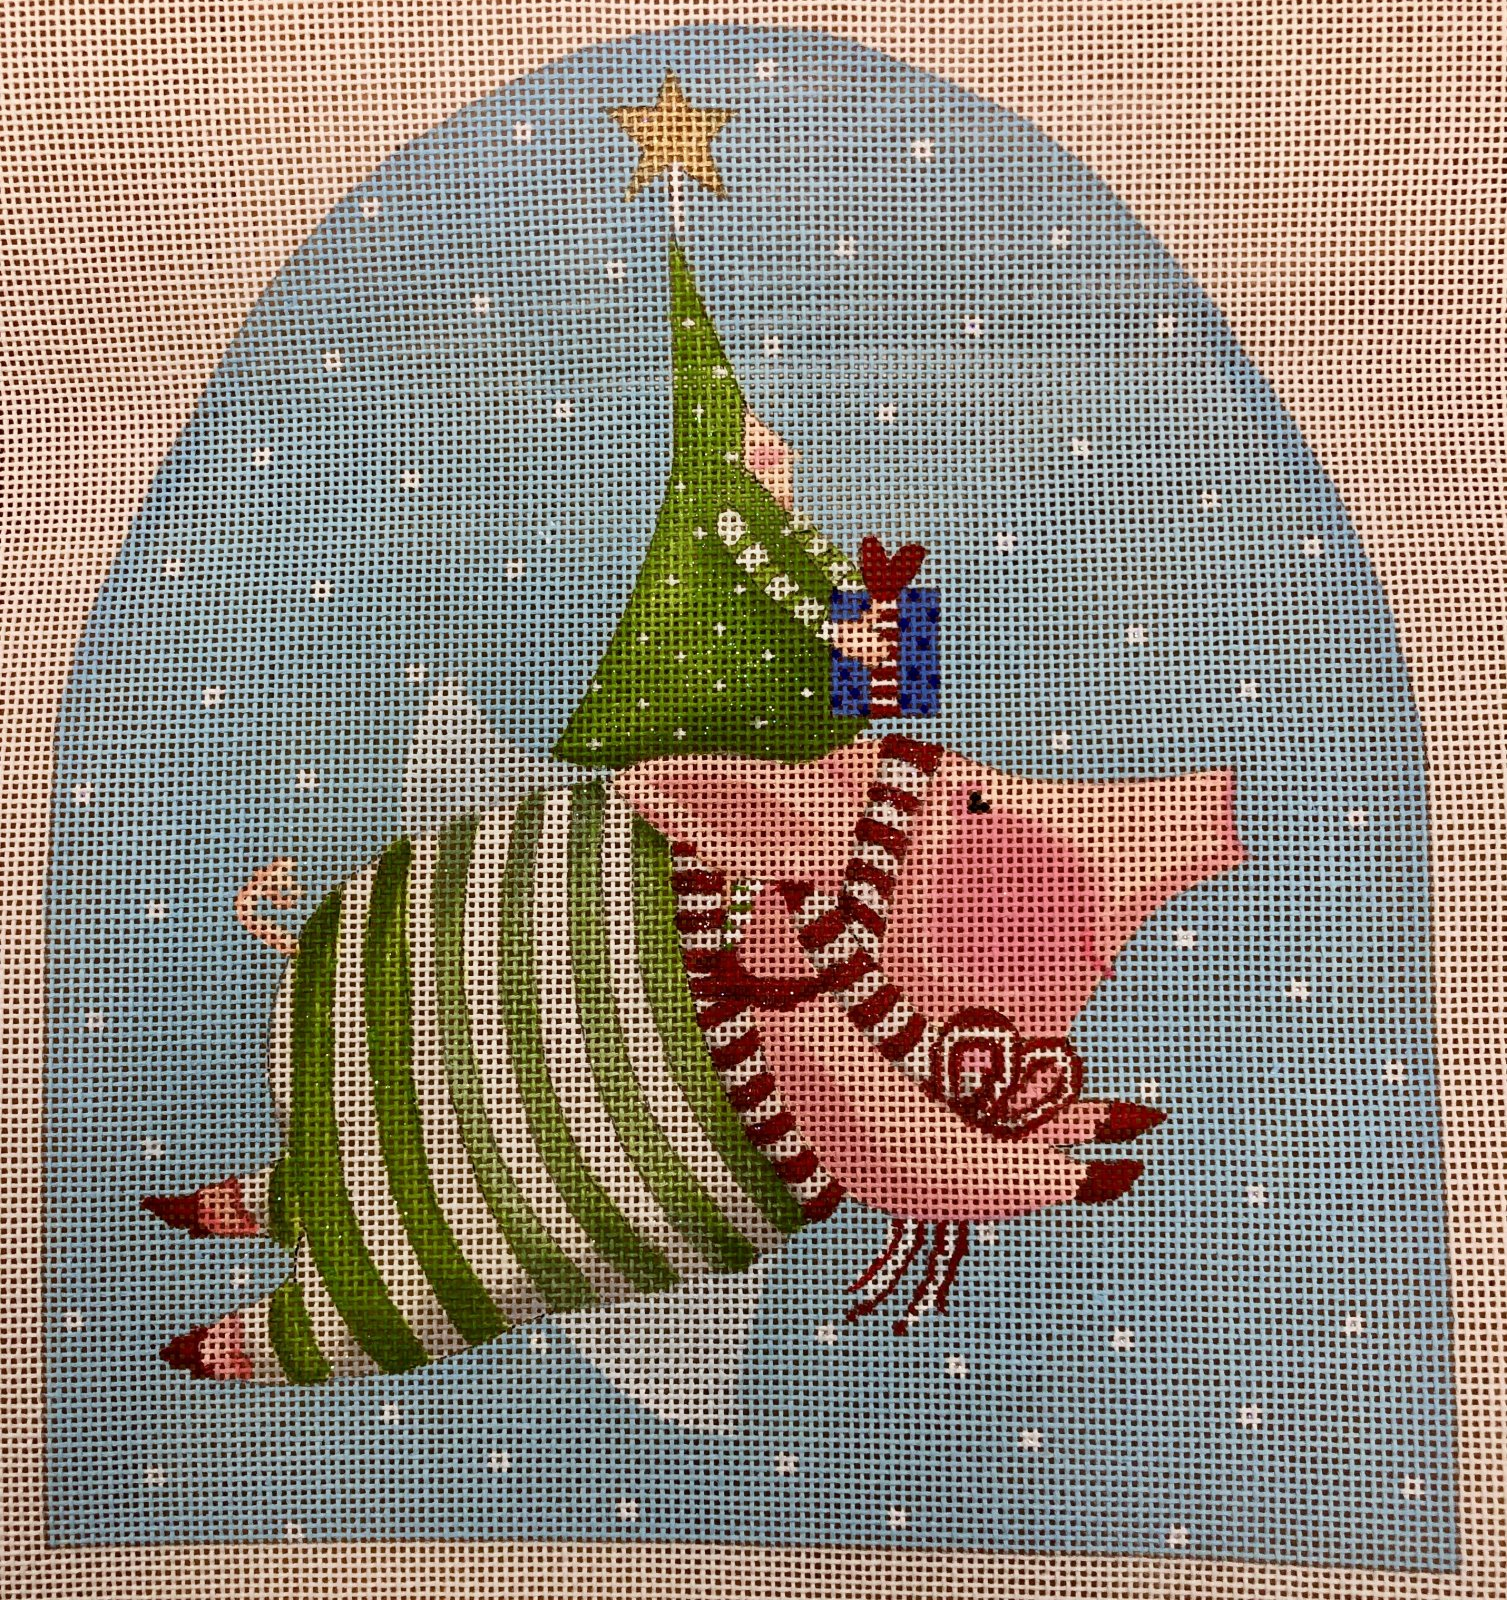 joyful flying pig